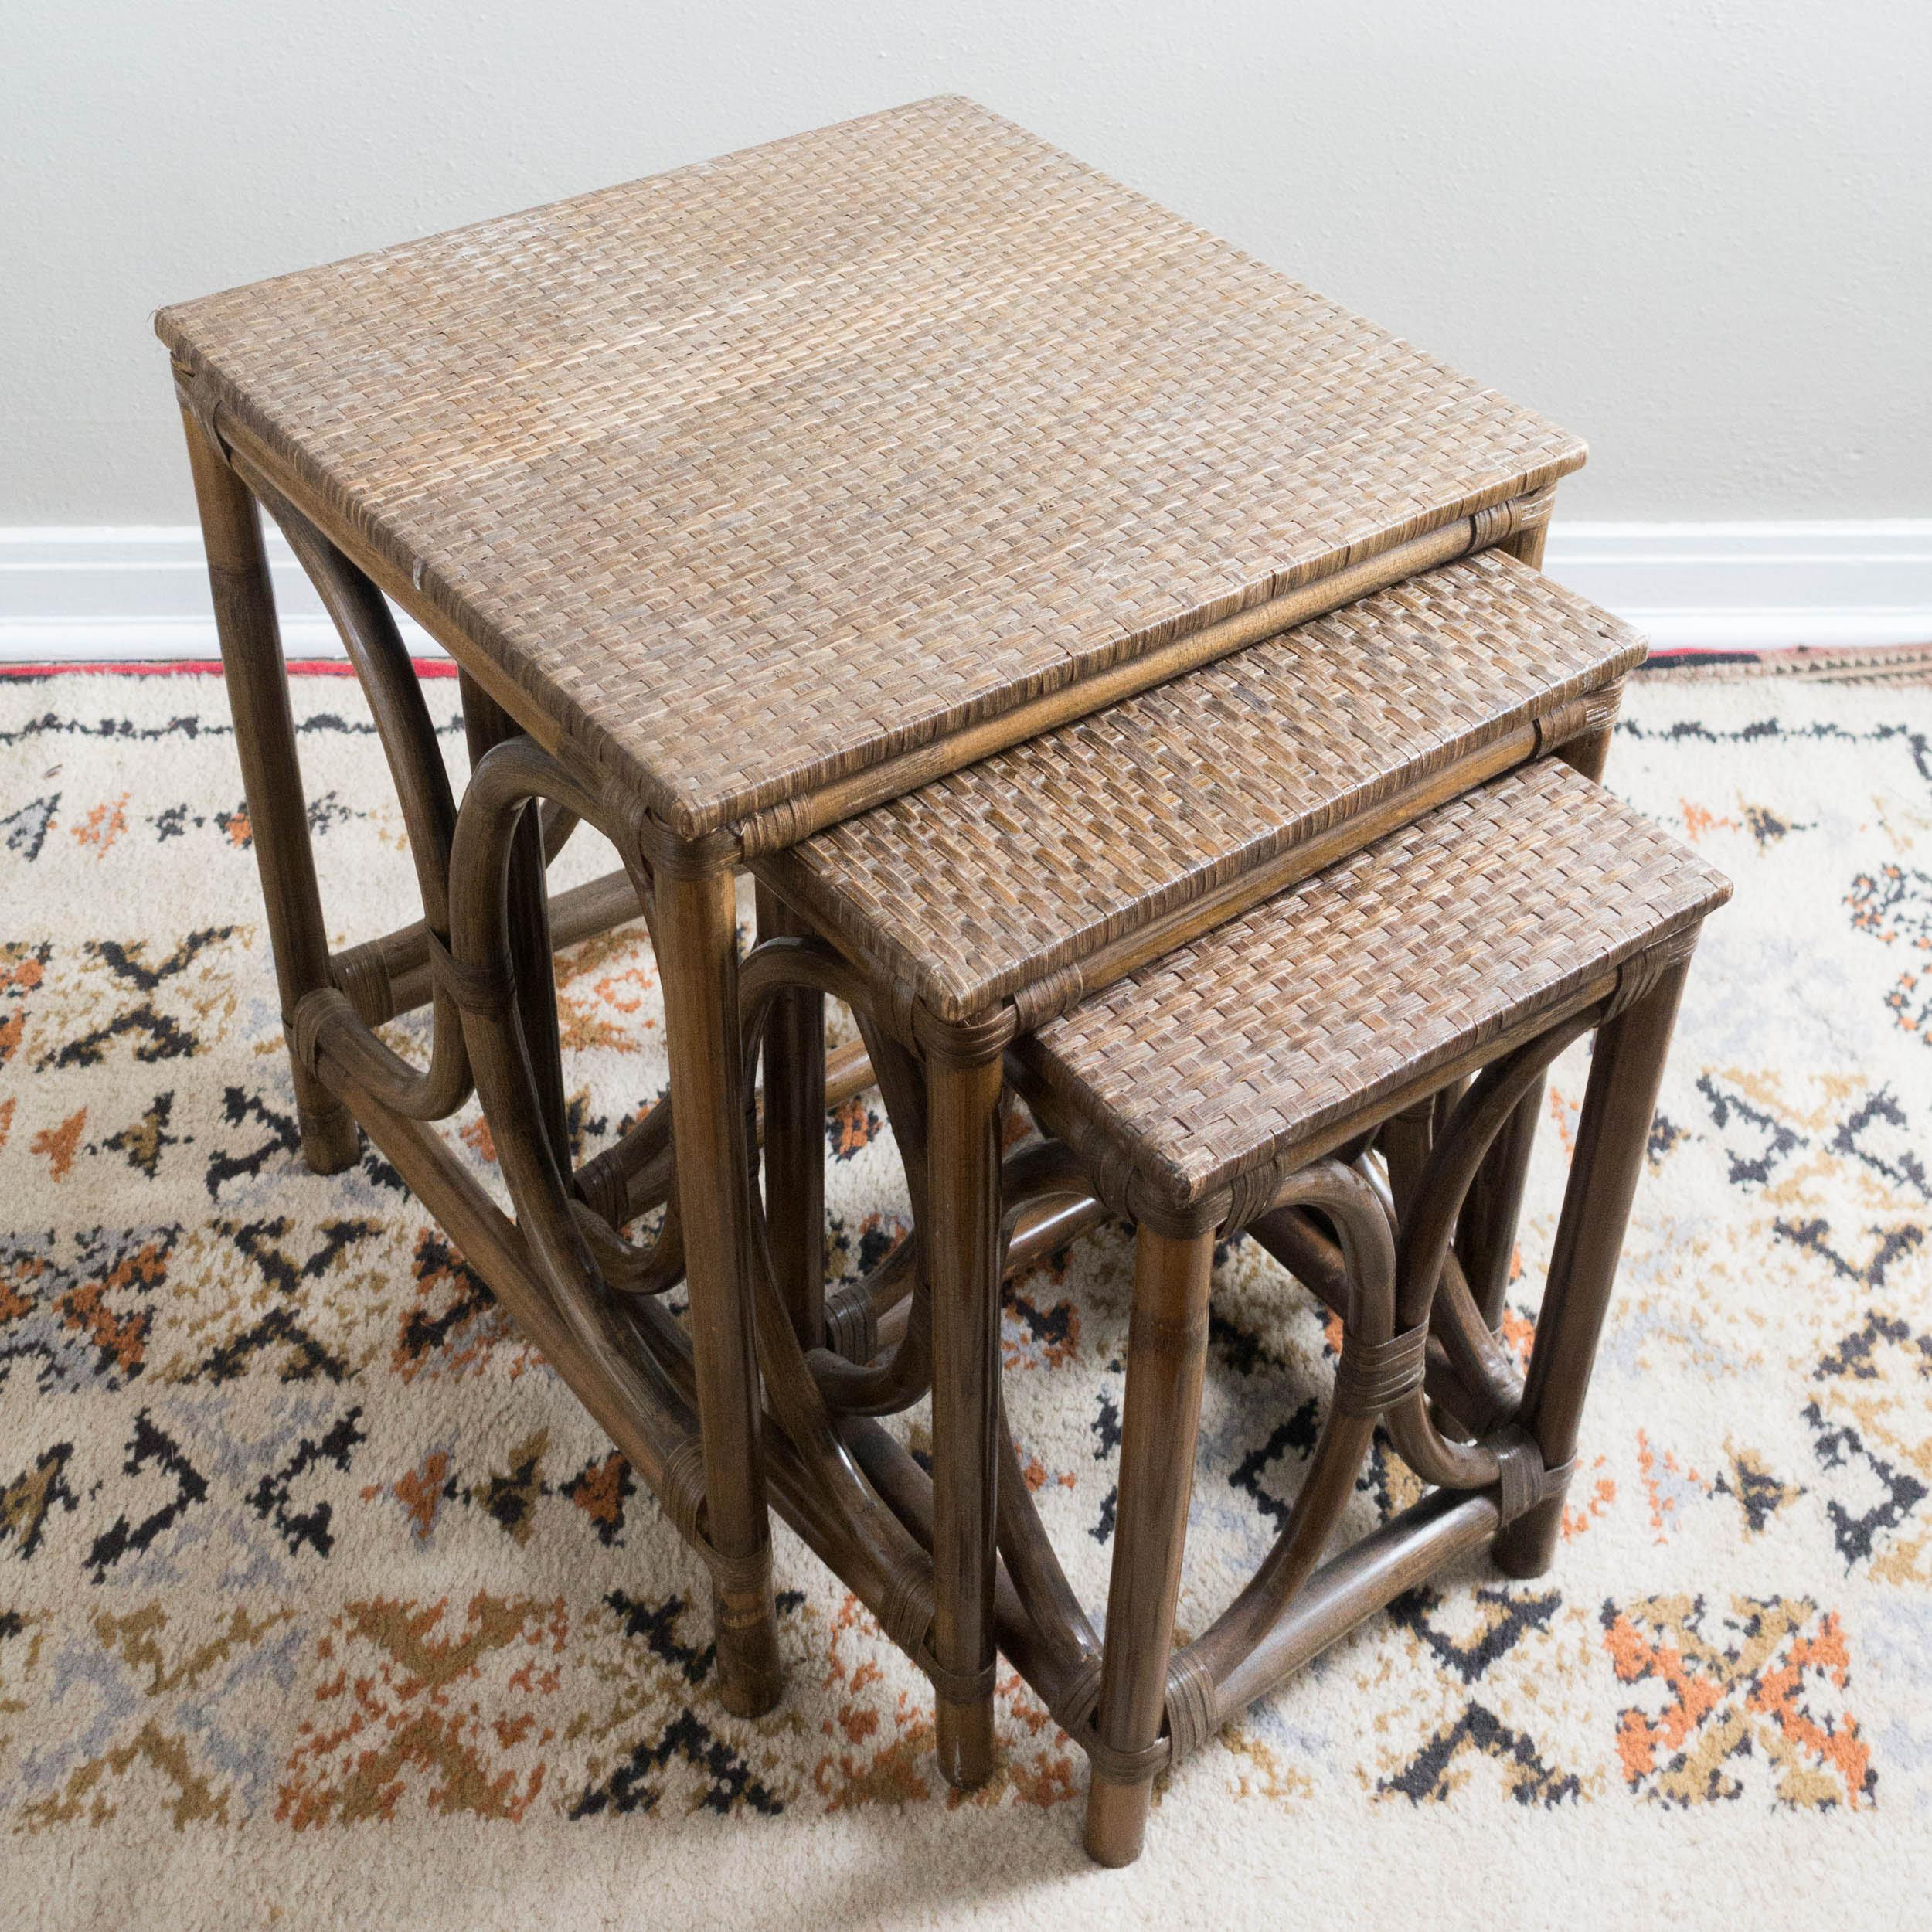 Vintage Rattan Nesting Tables   Set Of 3   Image 5 Of 5